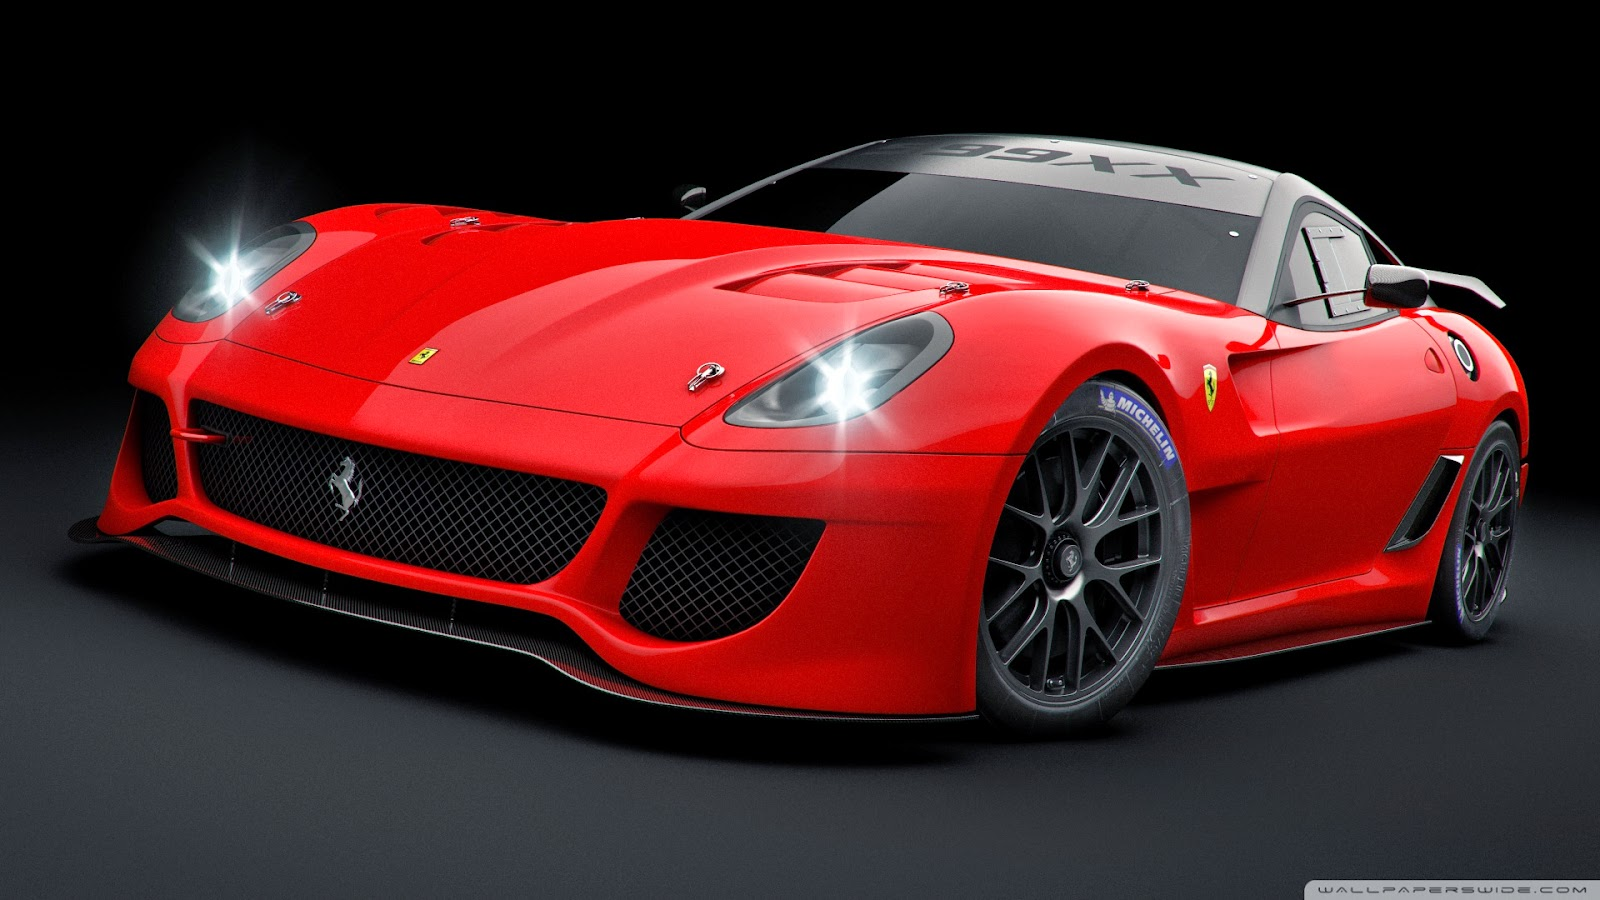 Ferrari Wallpapers, Ferrari, Ferrari Car Wallpapers, Car Wallpapers,  Vehicle Wallpapers, Wallpapers